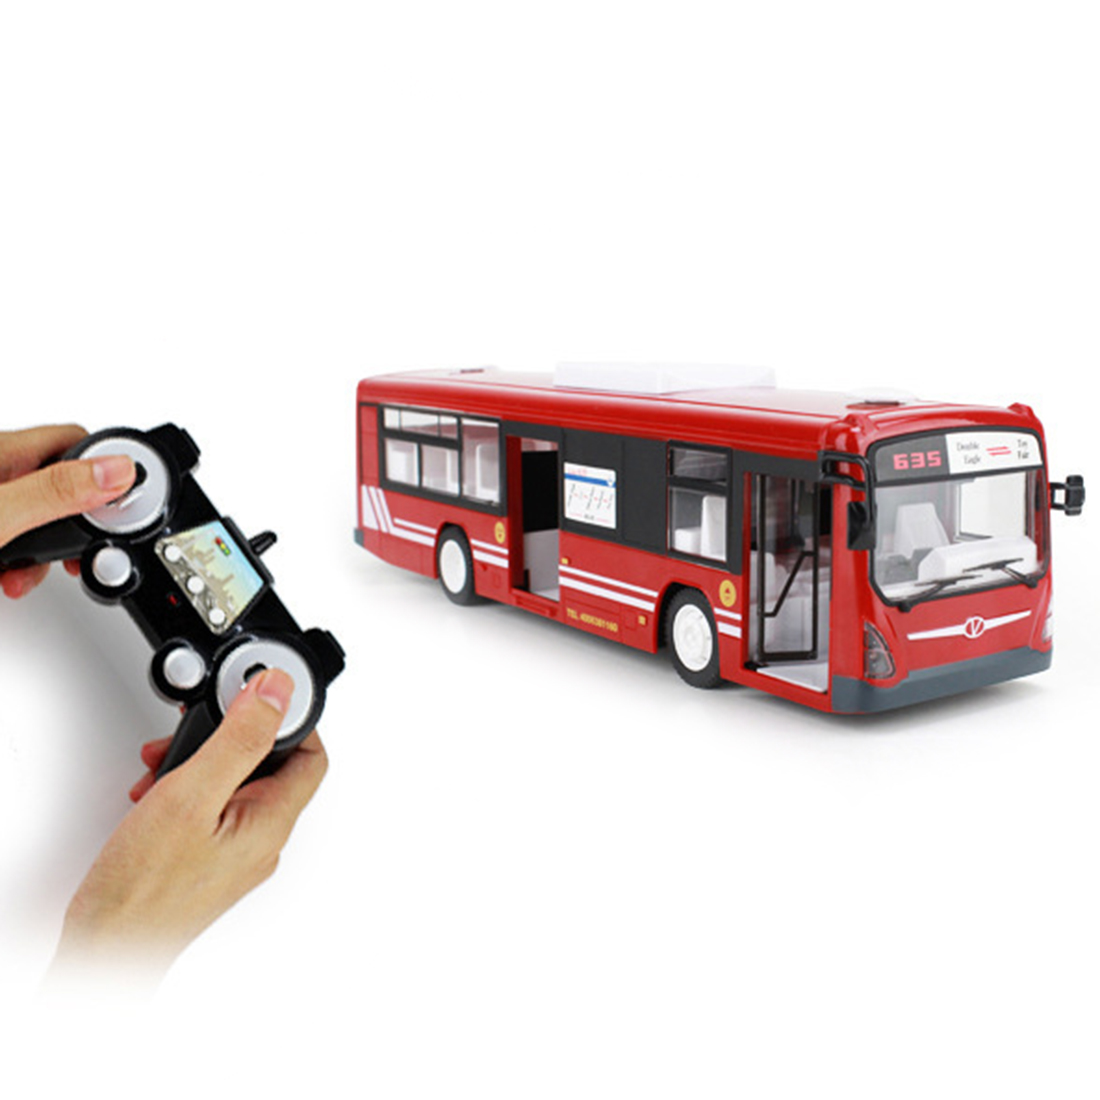 2.4G RC Car Bus City Express Model RC Toy Car with Realistic Light and Sound - Remote Control Bus Toys Birthday Gift Red